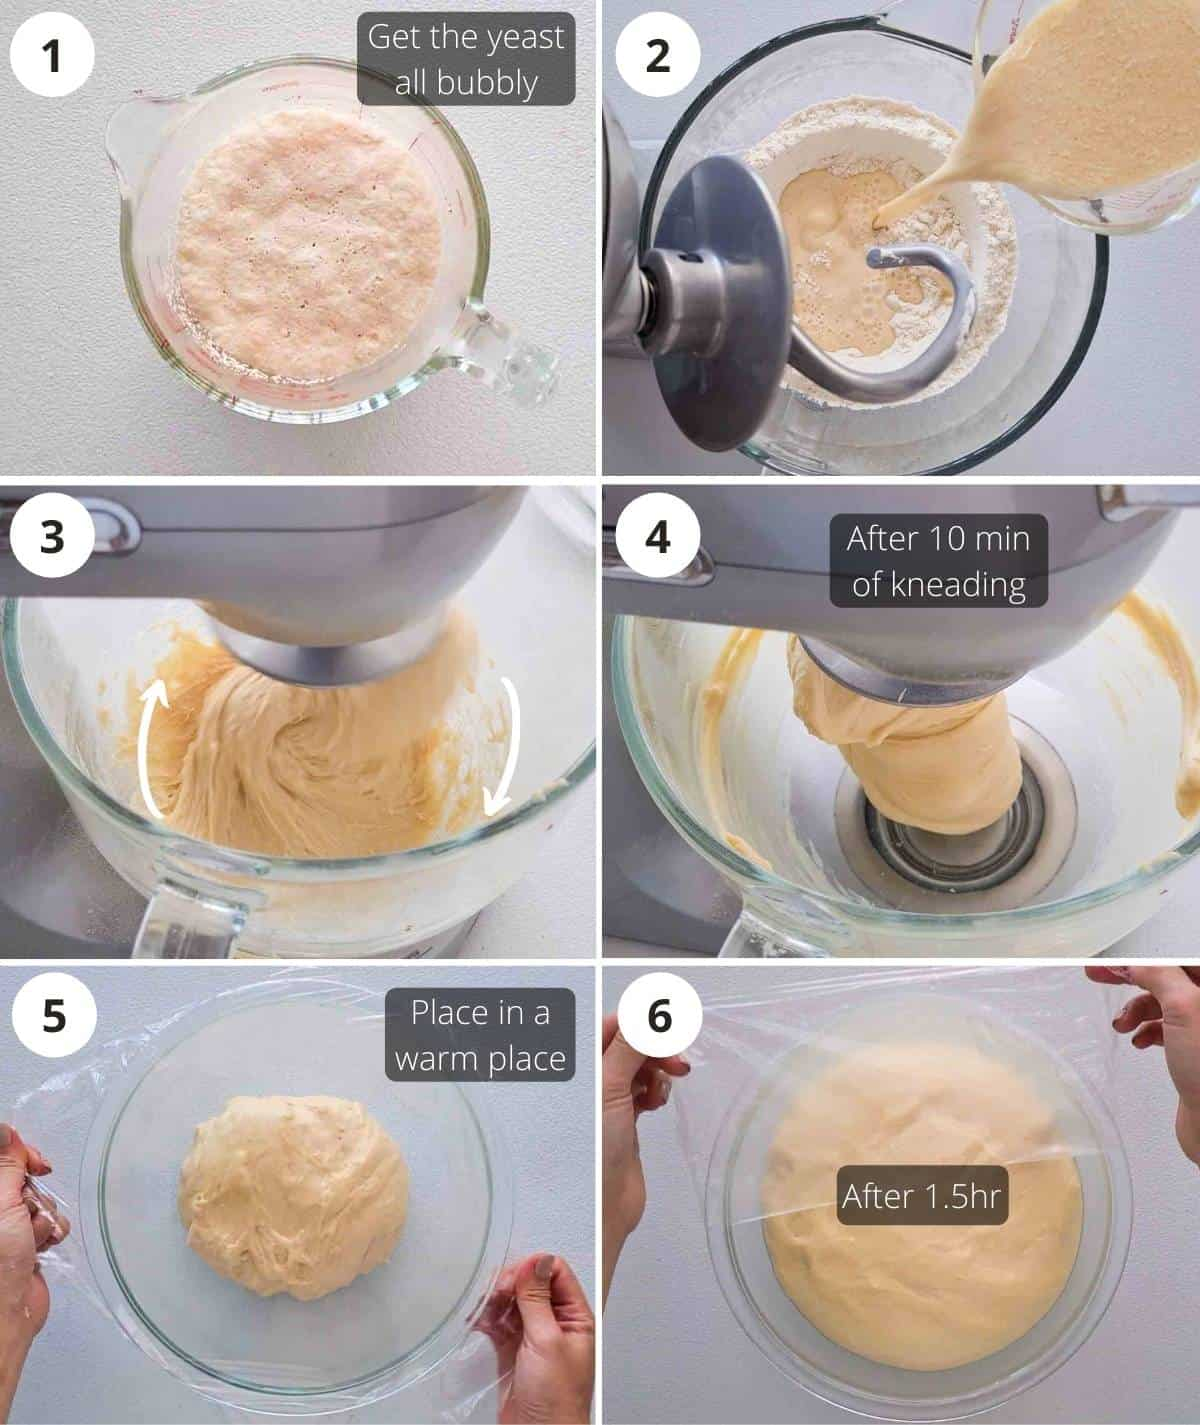 Step by step instructions on making the dough